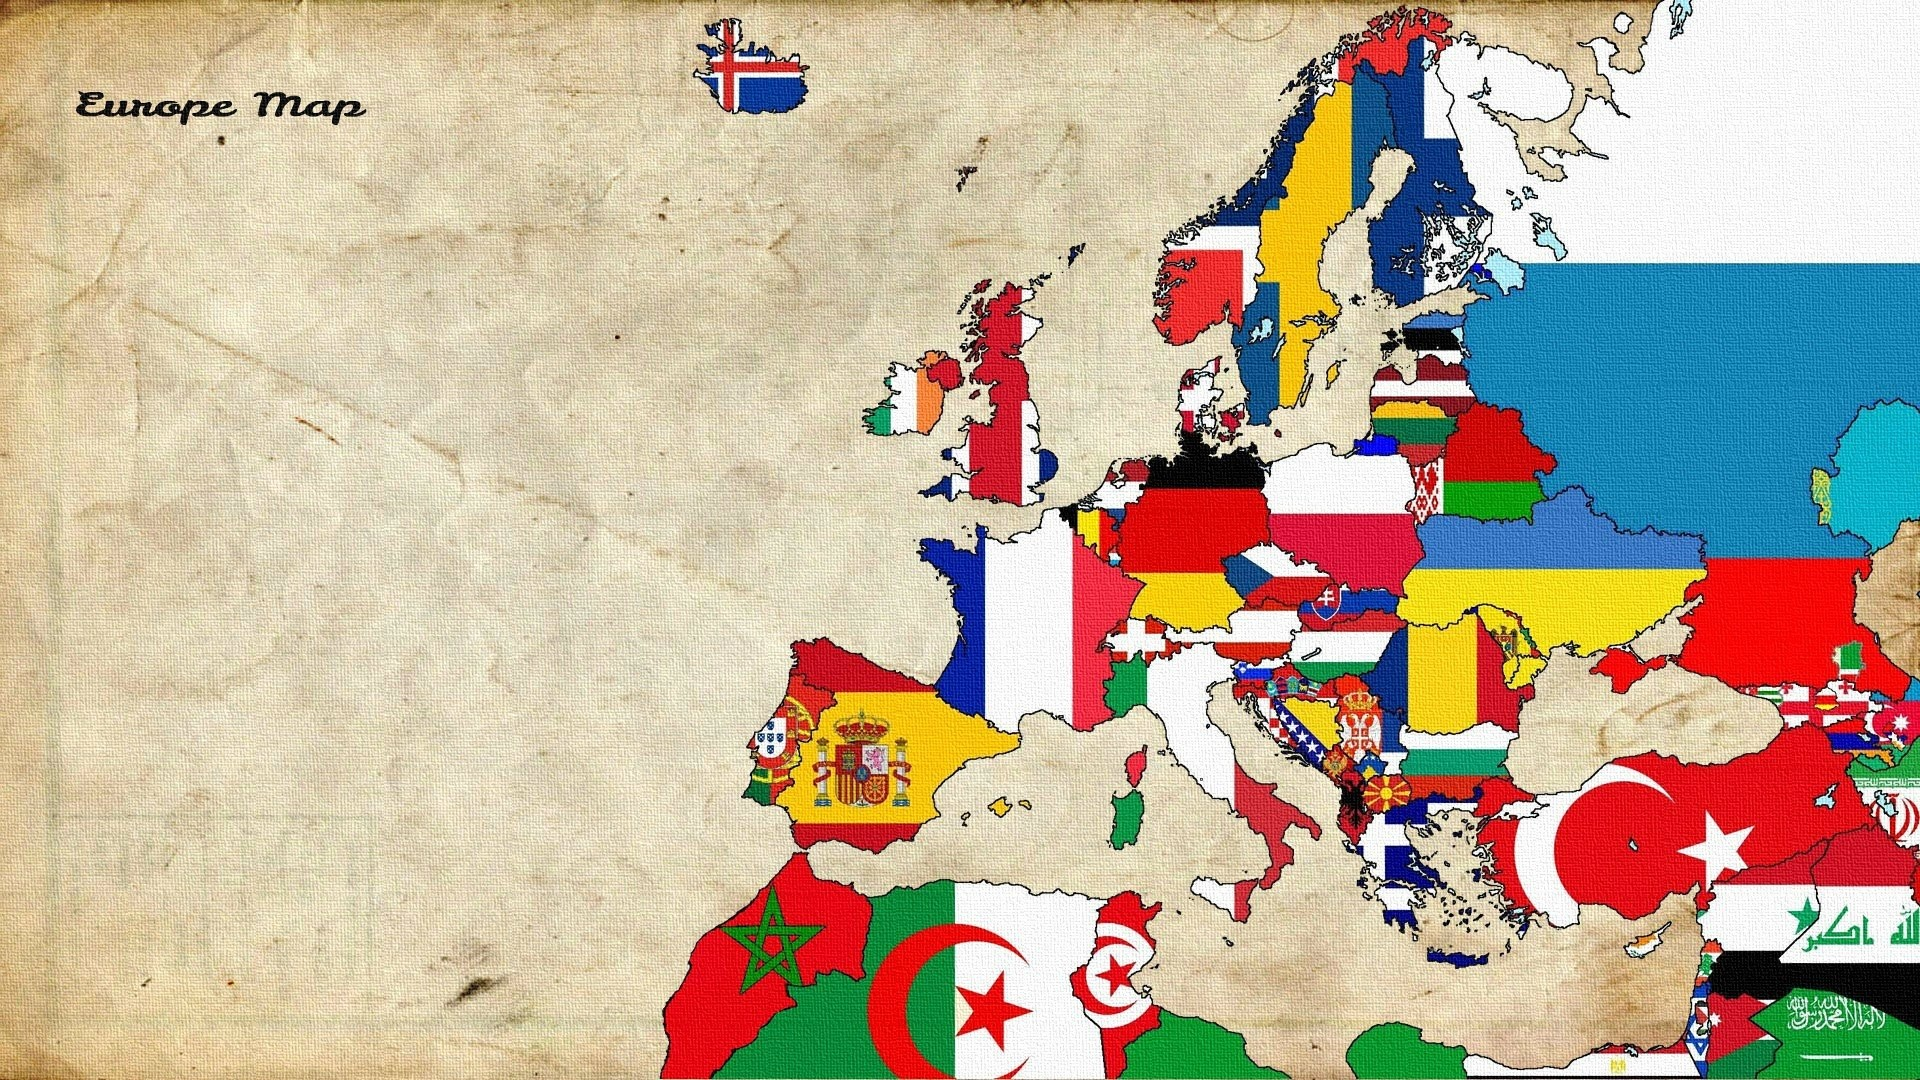 1920x1080 Maps Europe Old Map Flags